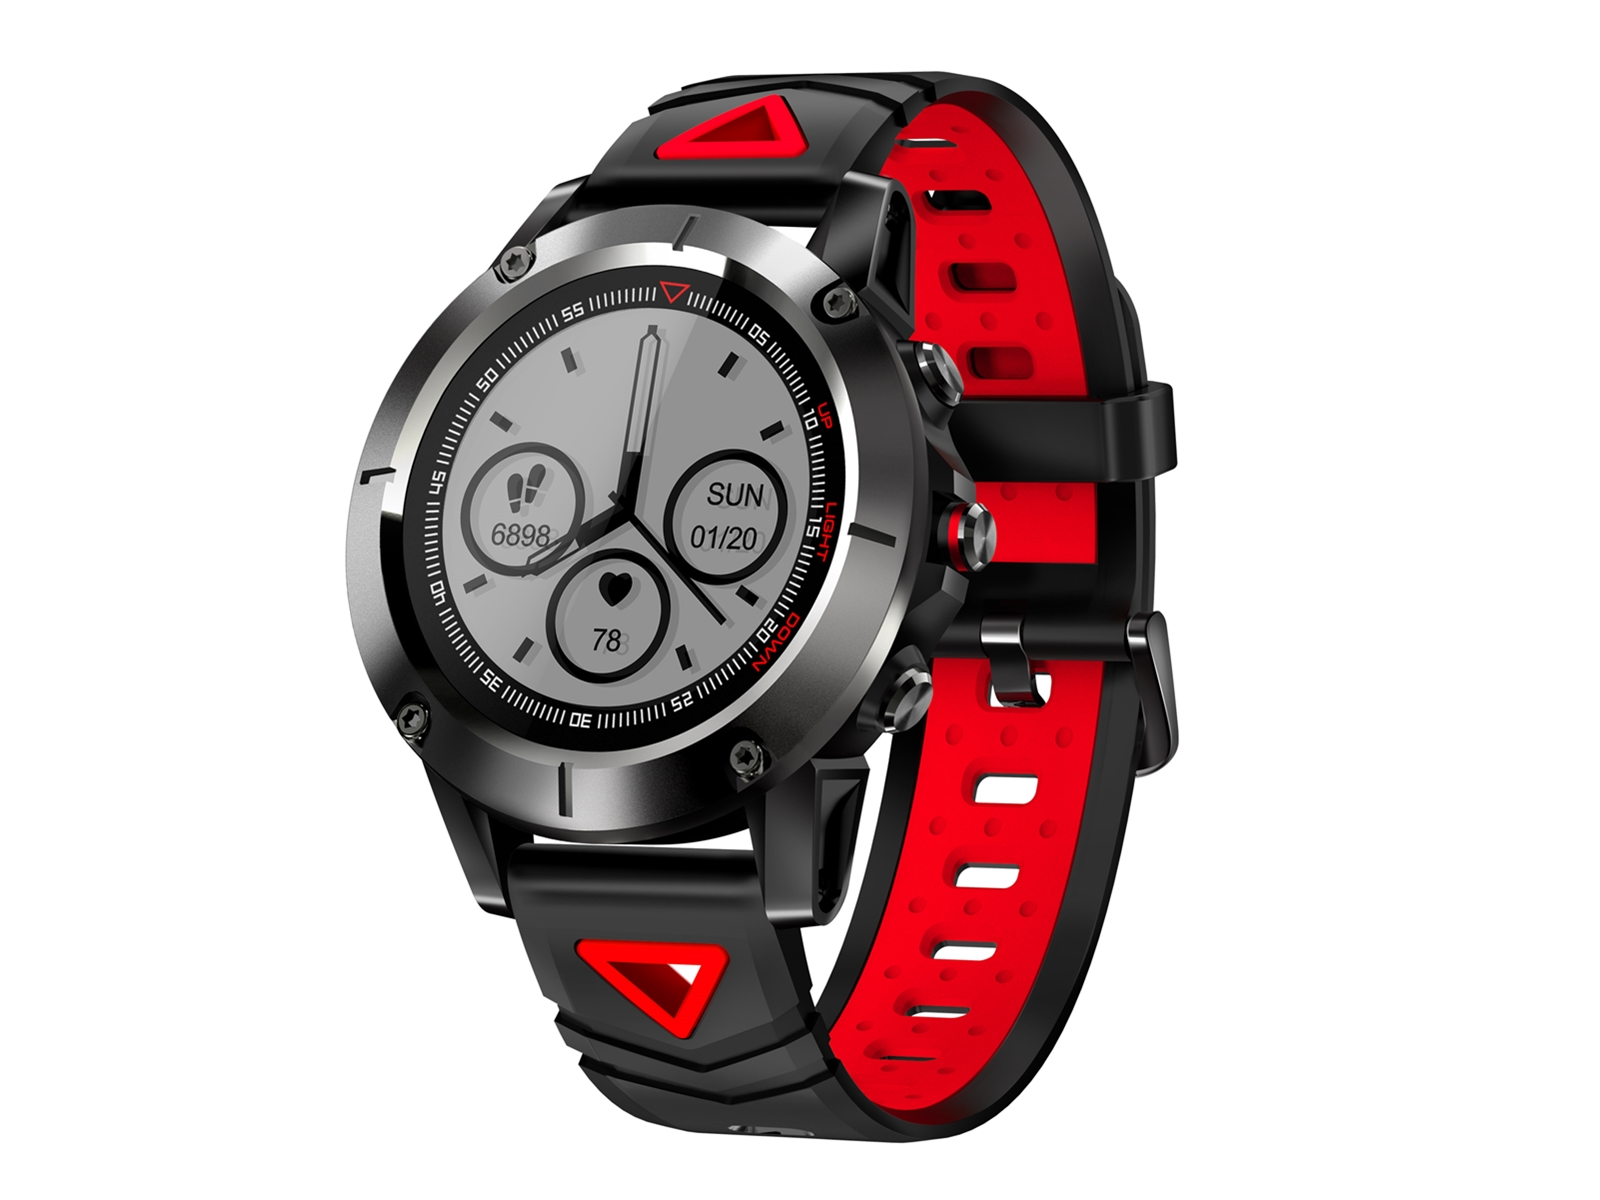 G01 GPS smart watch